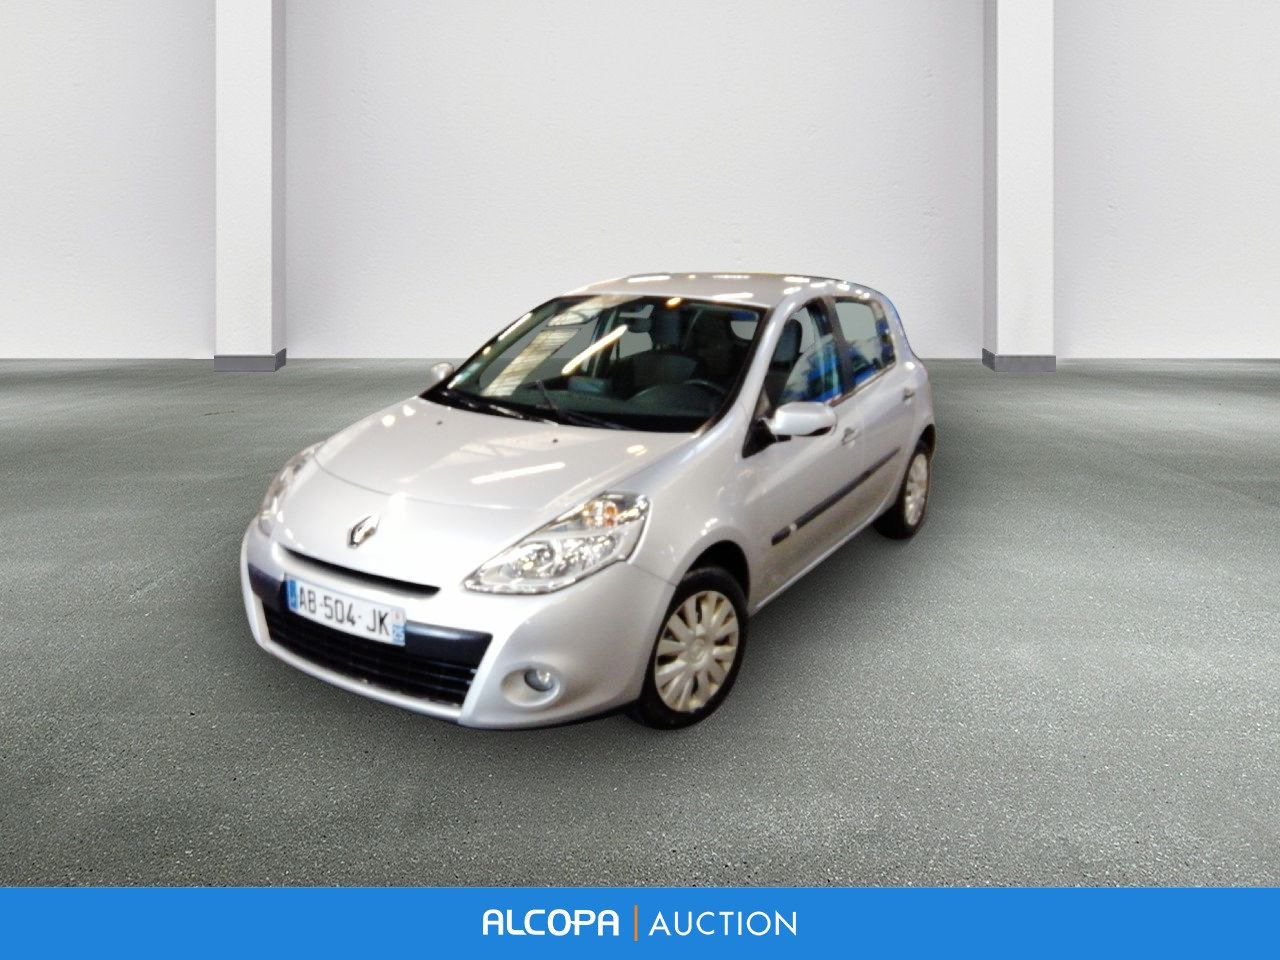 renault clio iii clio iii dci 70 eco2 tom tom edition alcopa auction. Black Bedroom Furniture Sets. Home Design Ideas